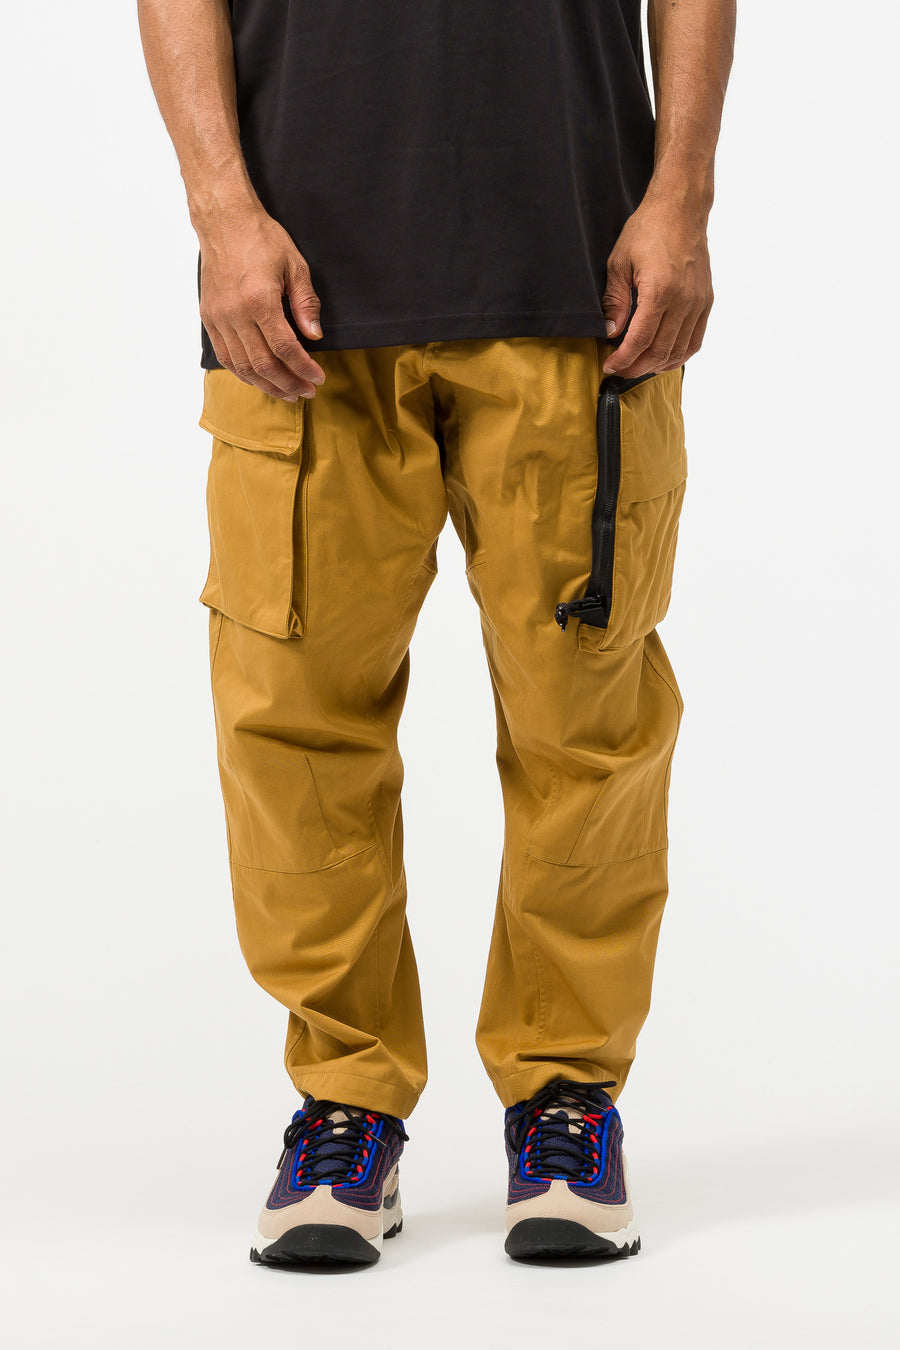 attractive & durable new specials aesthetic appearance ACG Cargo Pants in Wheat